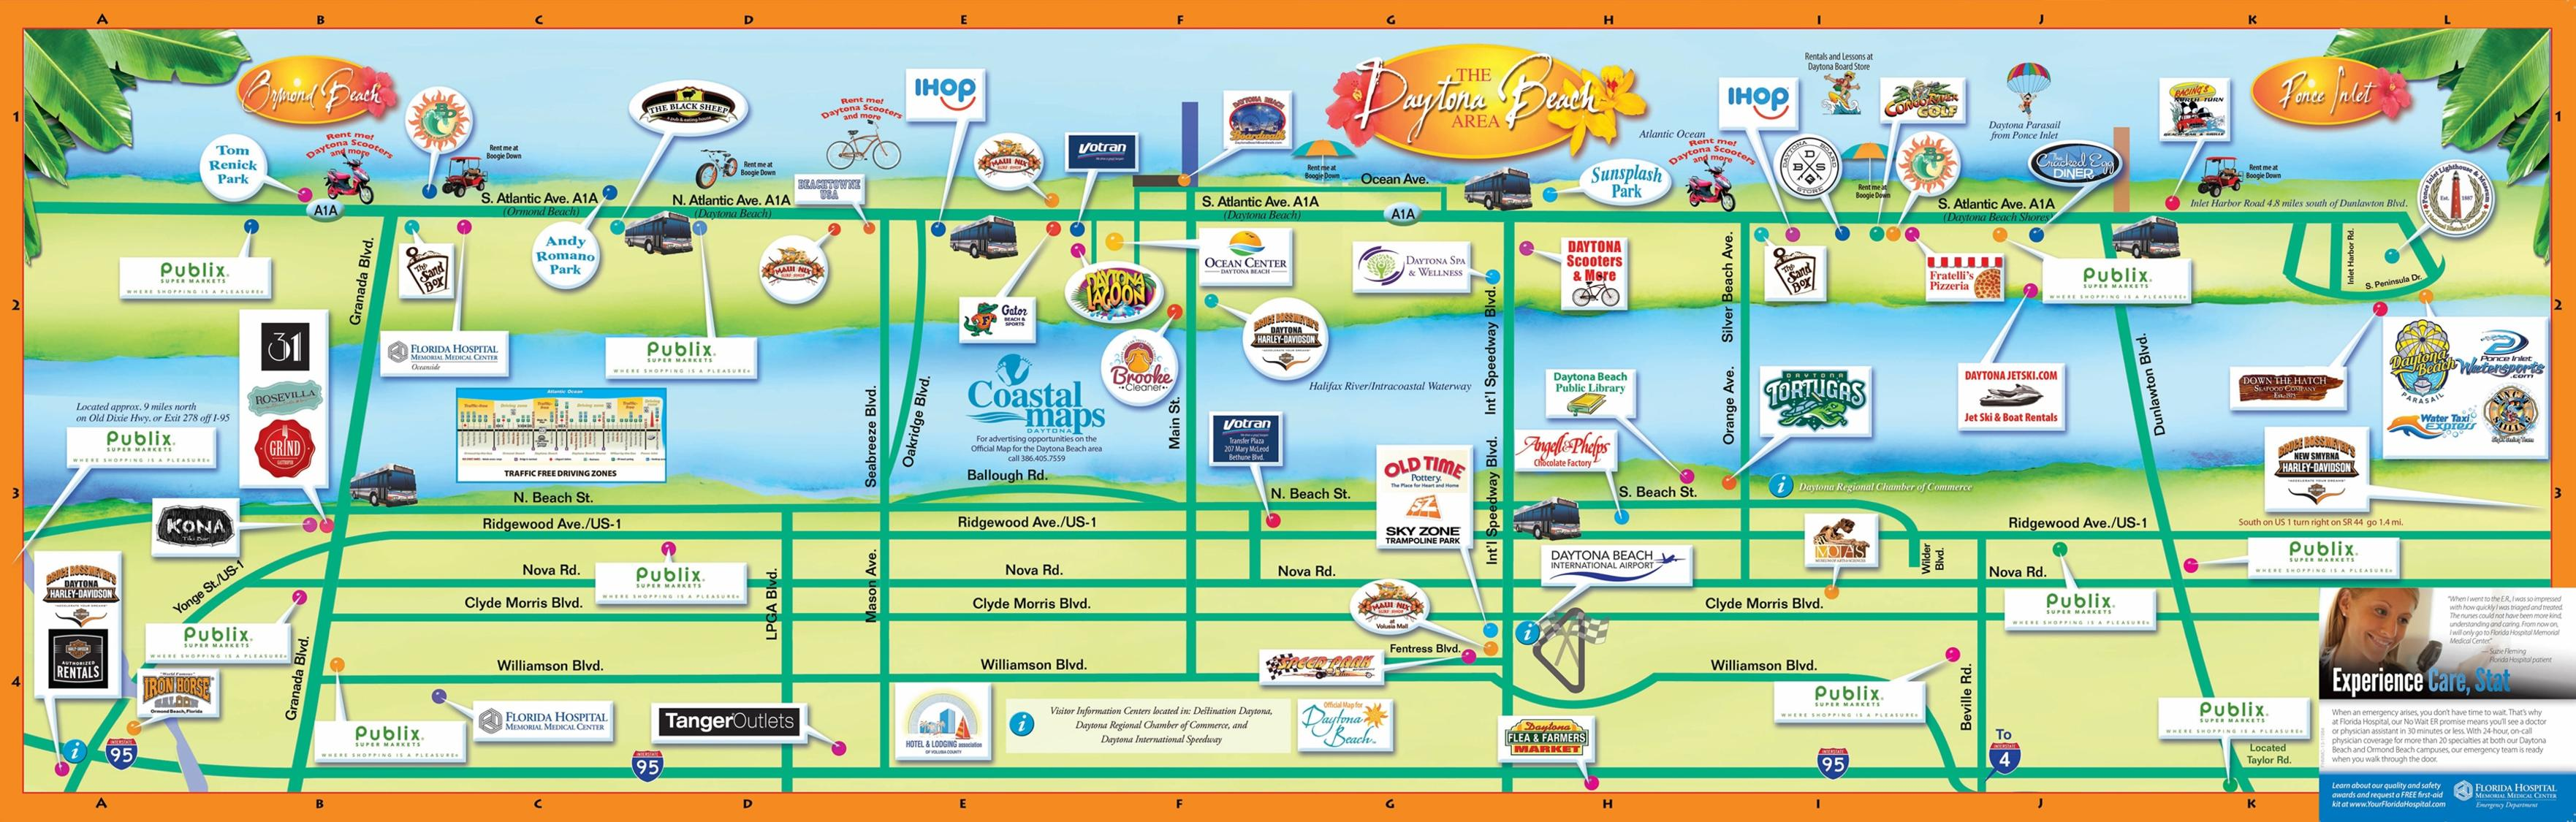 Atlantic Coast Florida Road Trip ROAD TRIP USA Maps City Of - Florida map beach